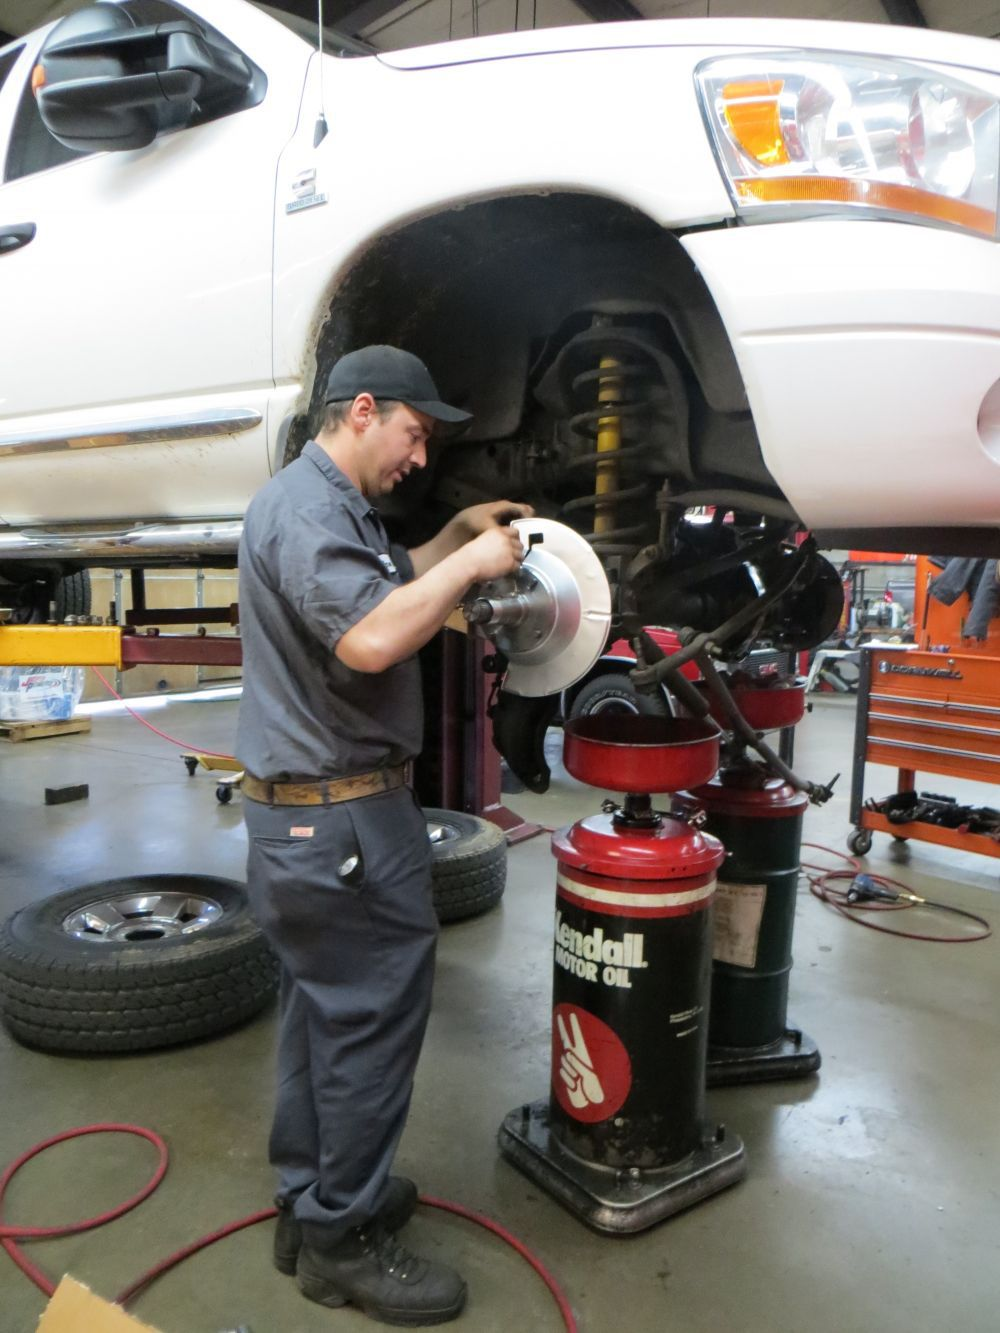 Professional car repairing services provided in High Point, NC